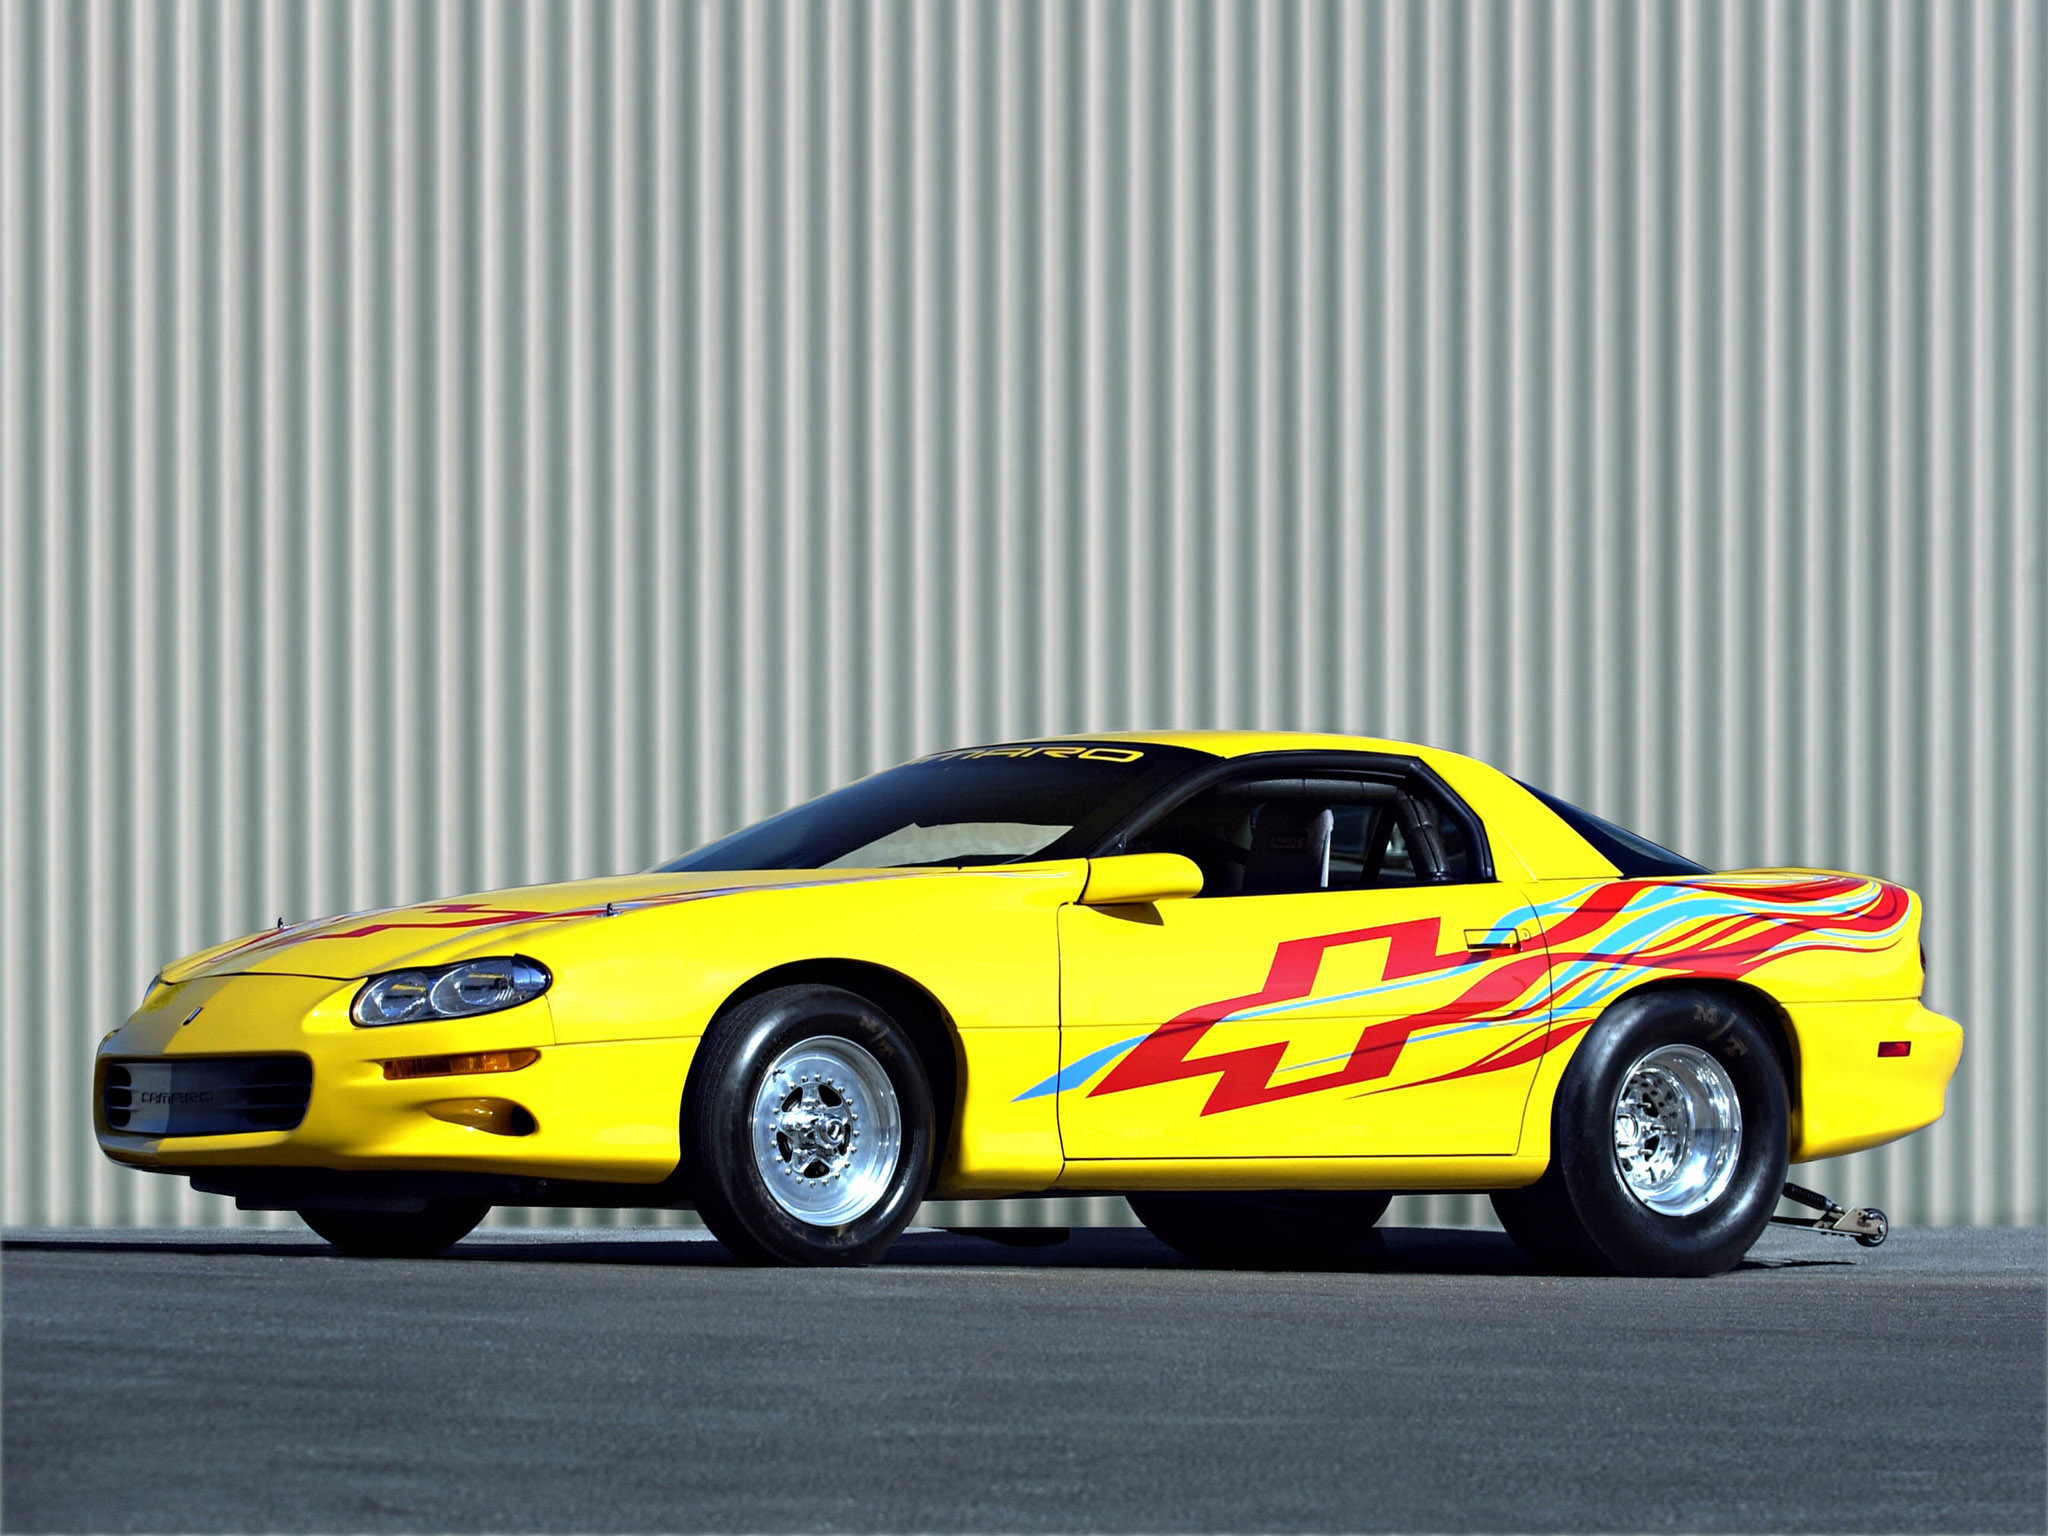 2002 Chevrolet Camaro Dragster Muscle Drag Racing Race Hot